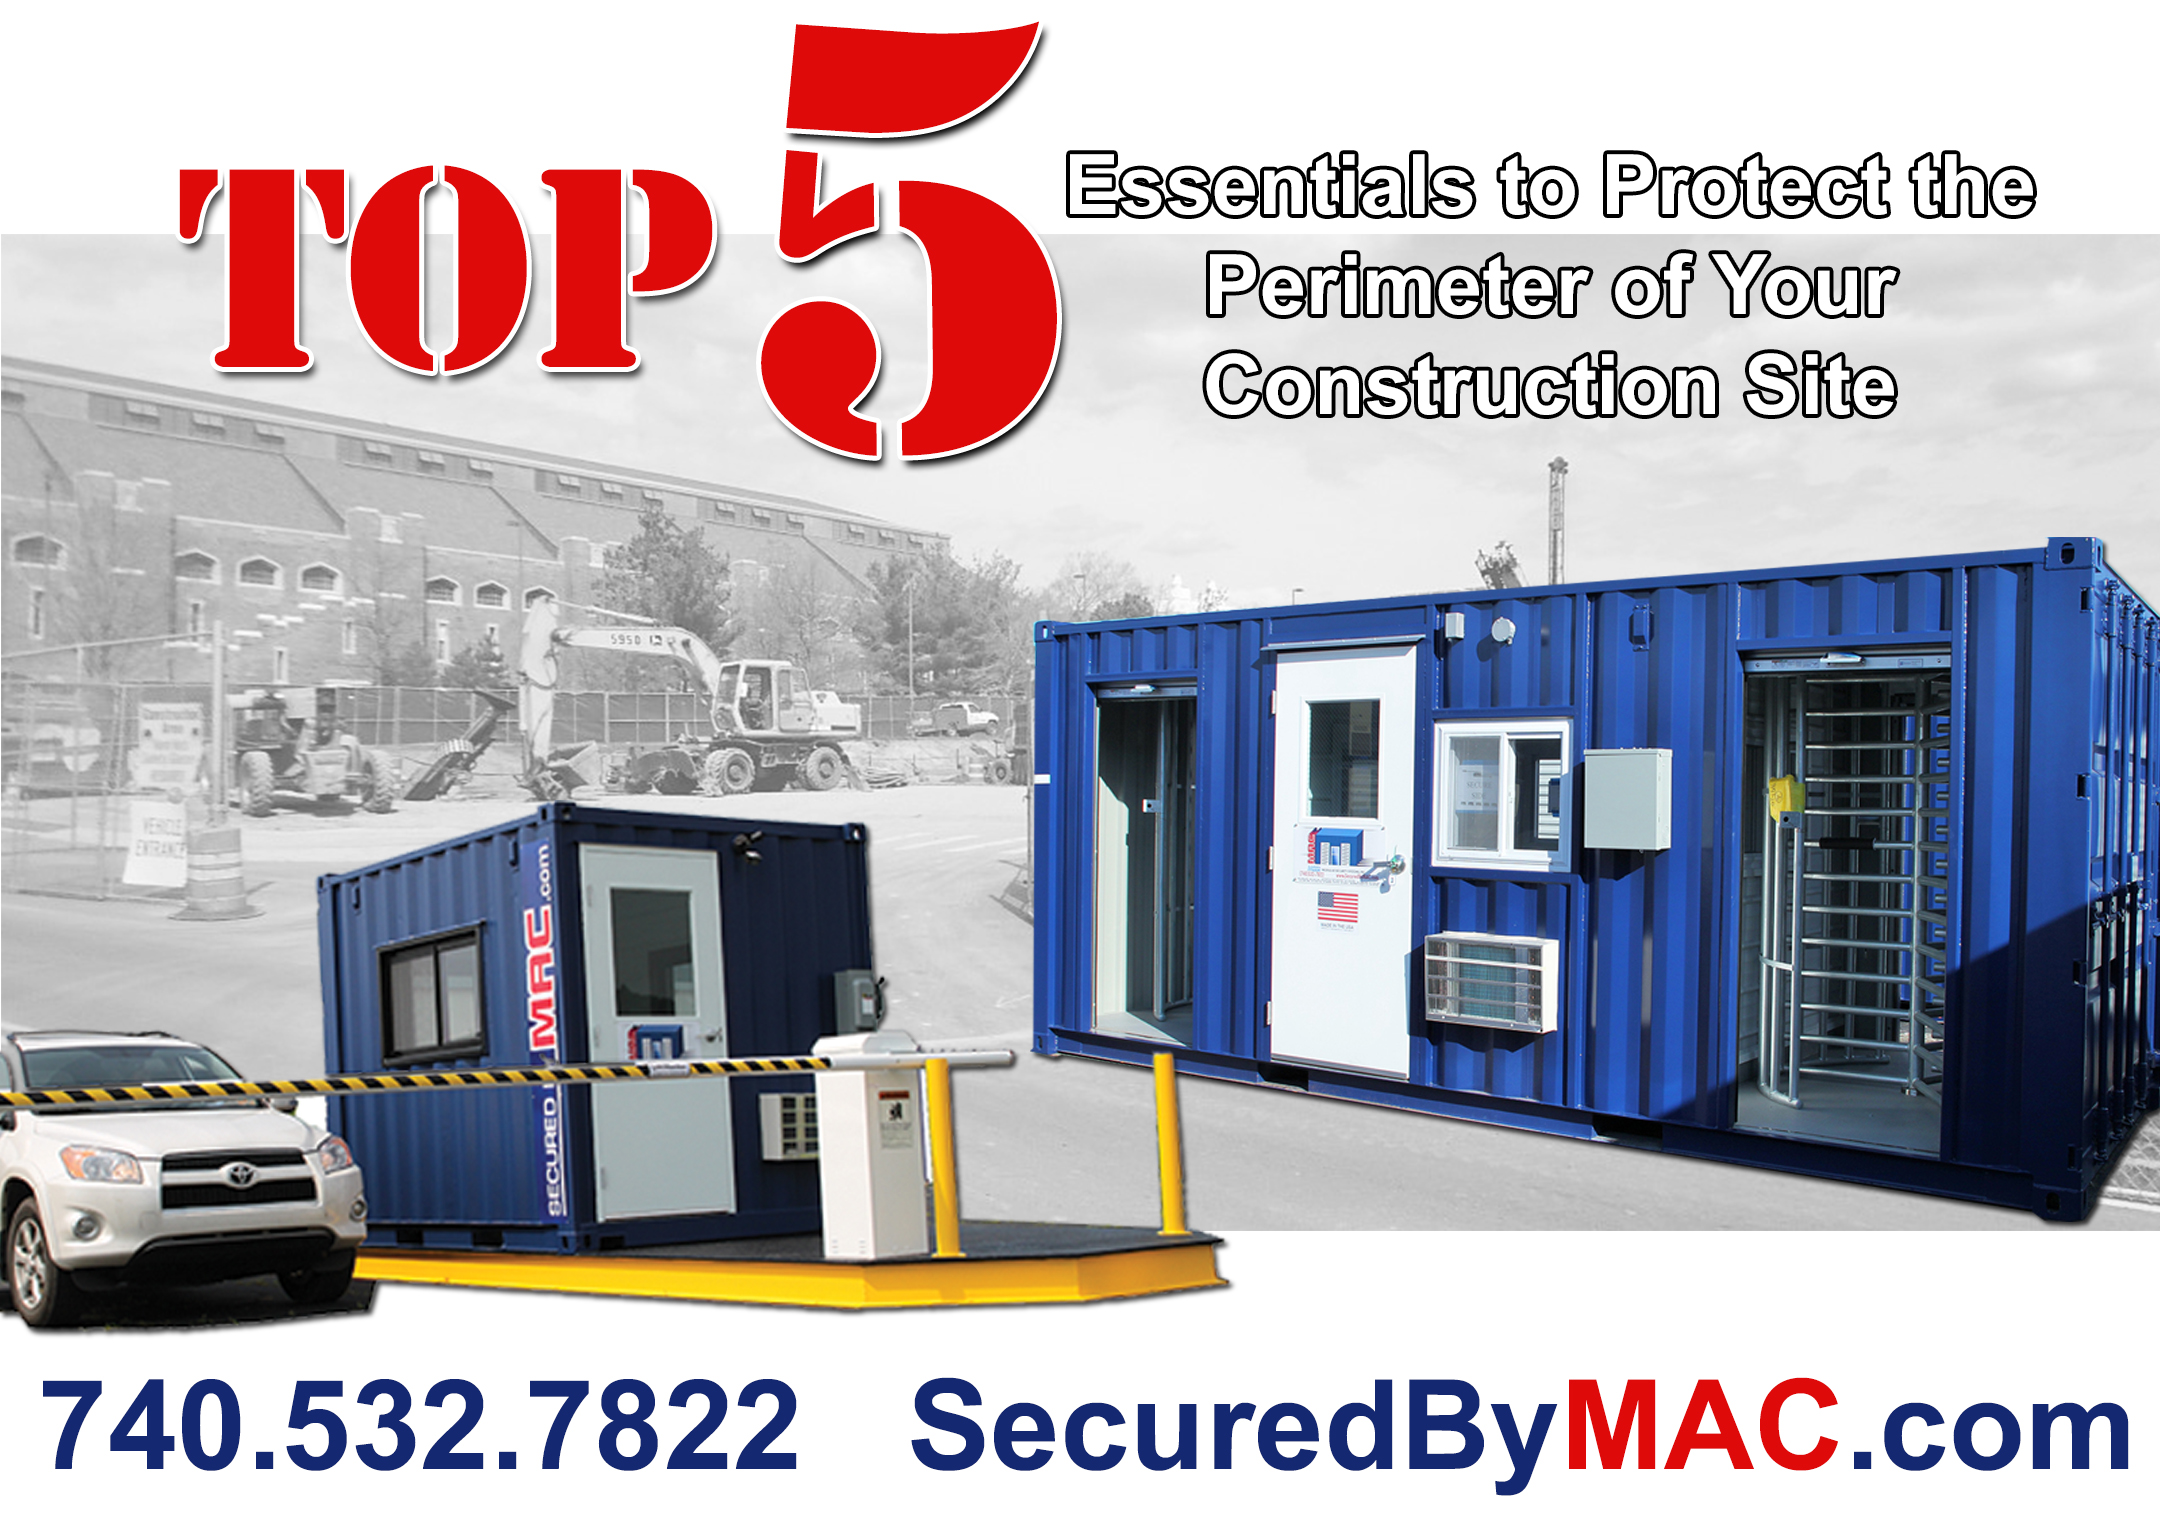 Top 5 Essentials to Protect the Perimeter of Your Construction Site